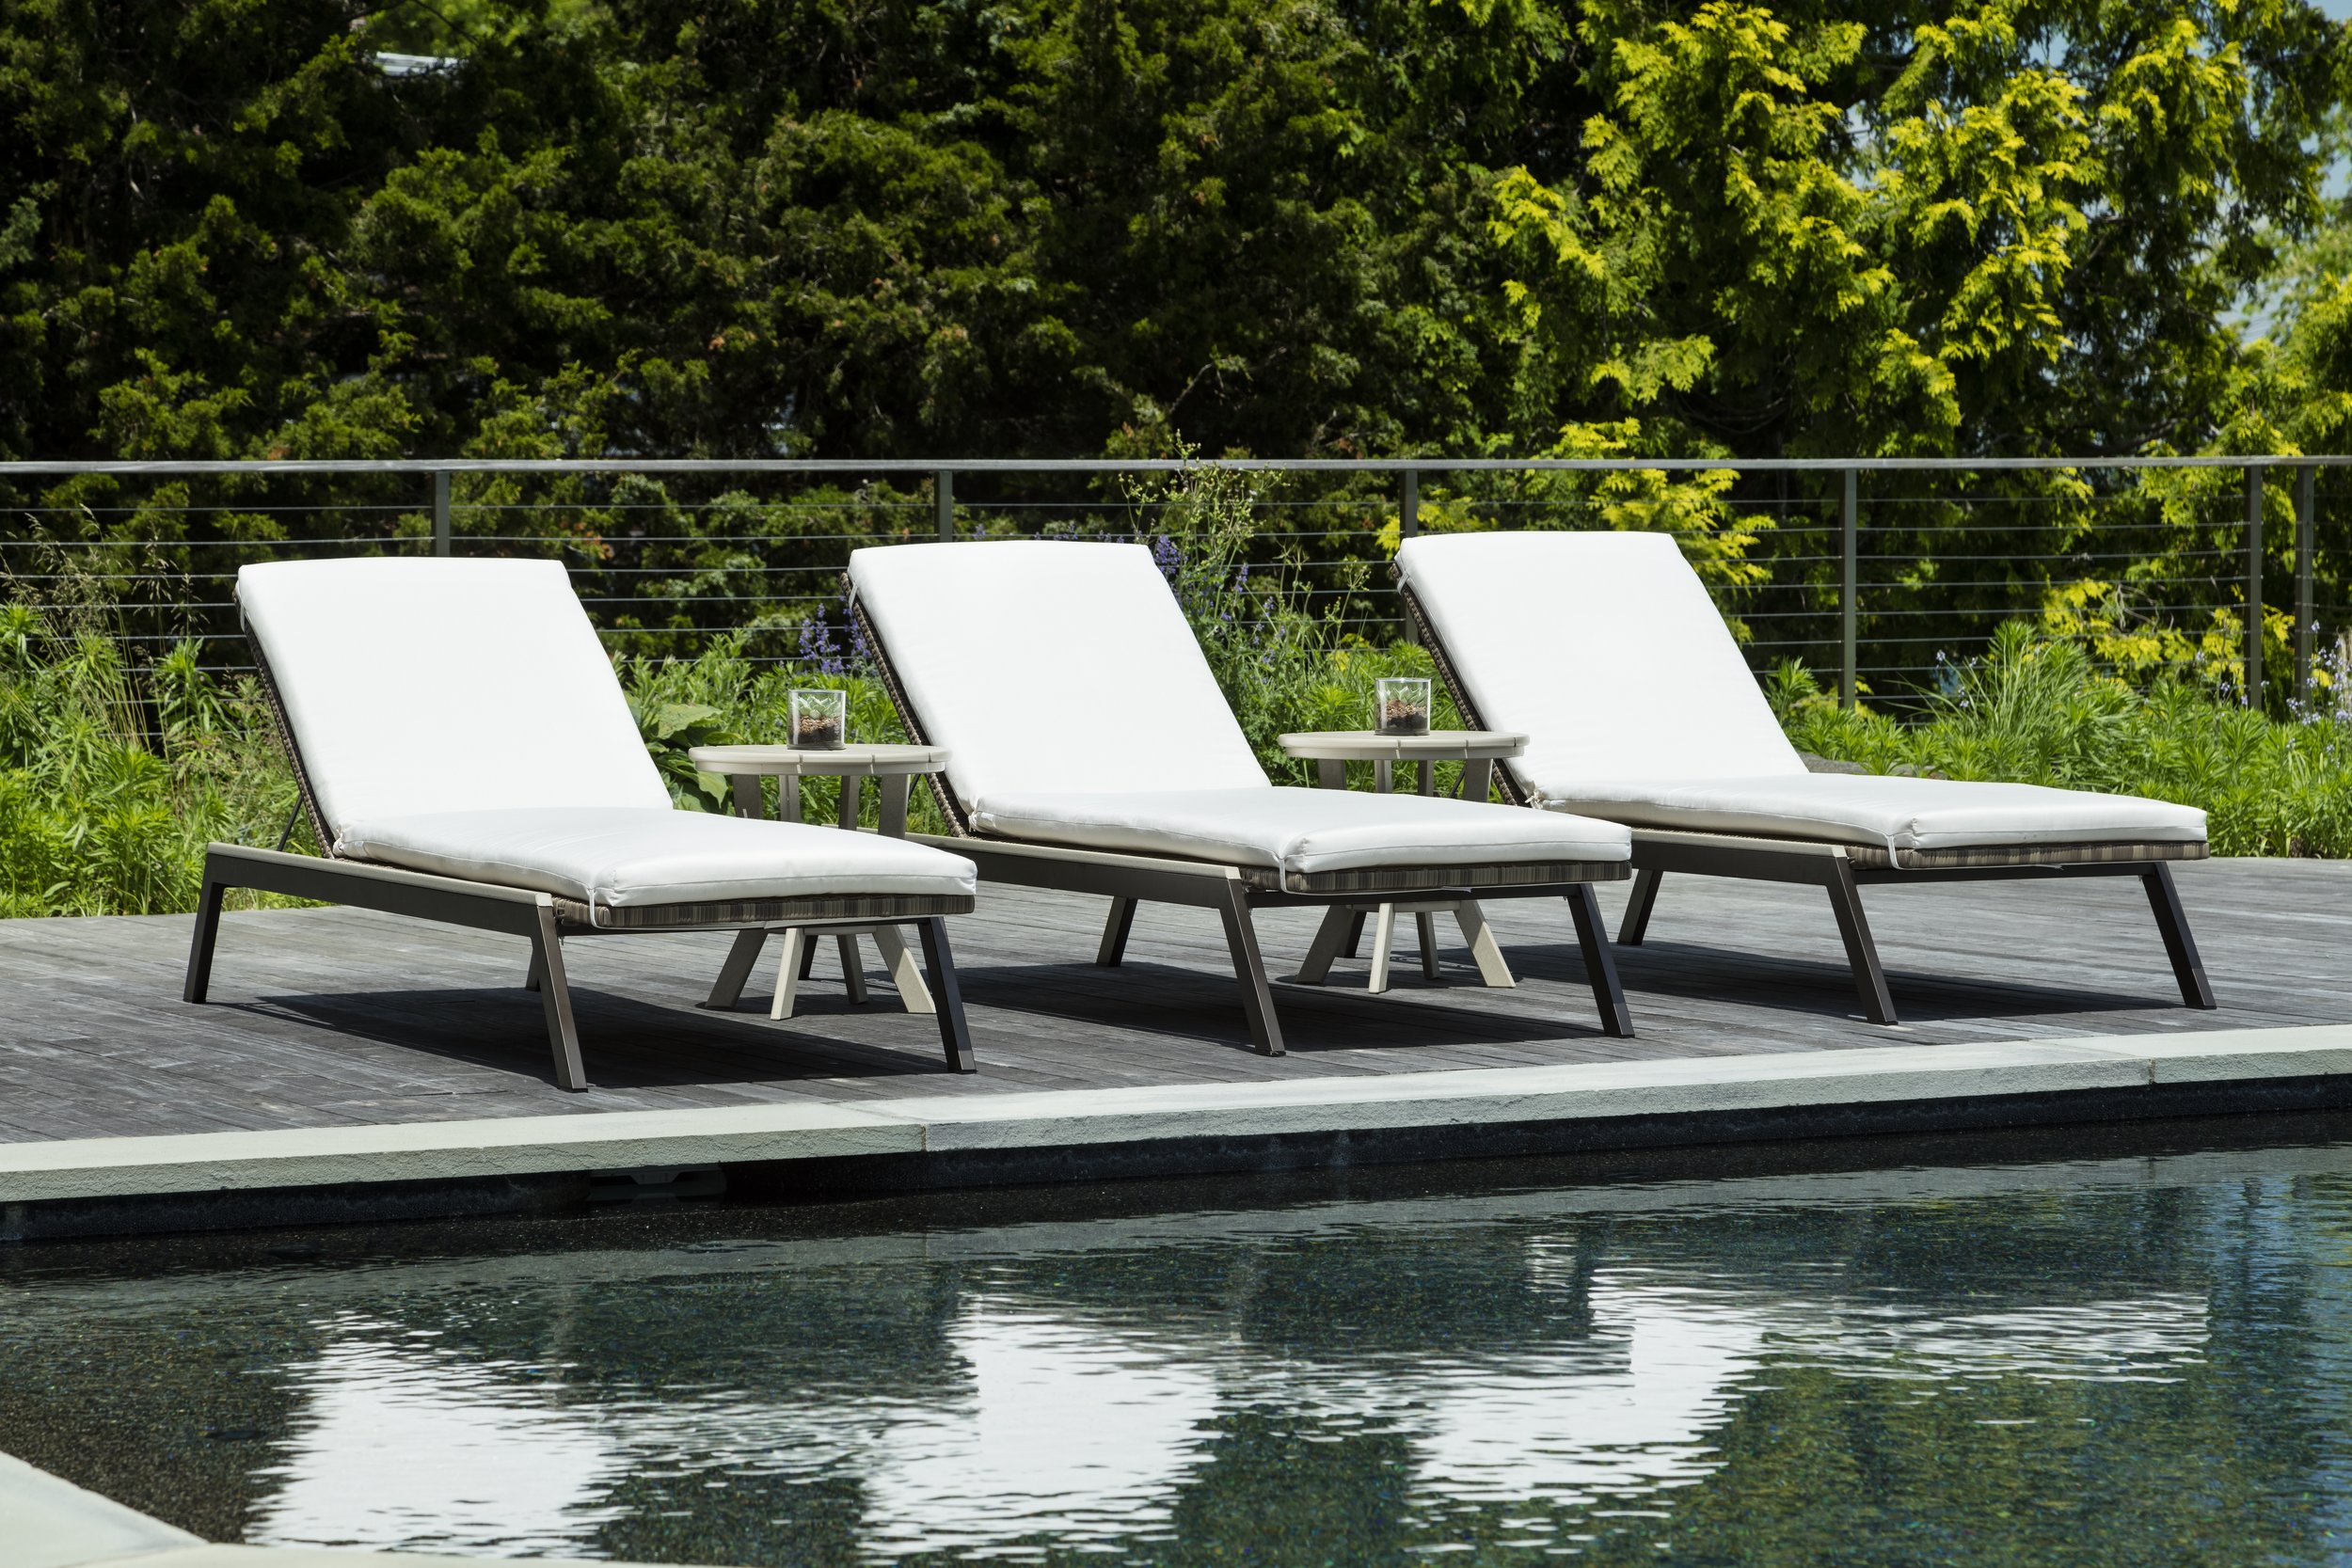 MAD Fusion Chaise Chairs - Poolside Chairs